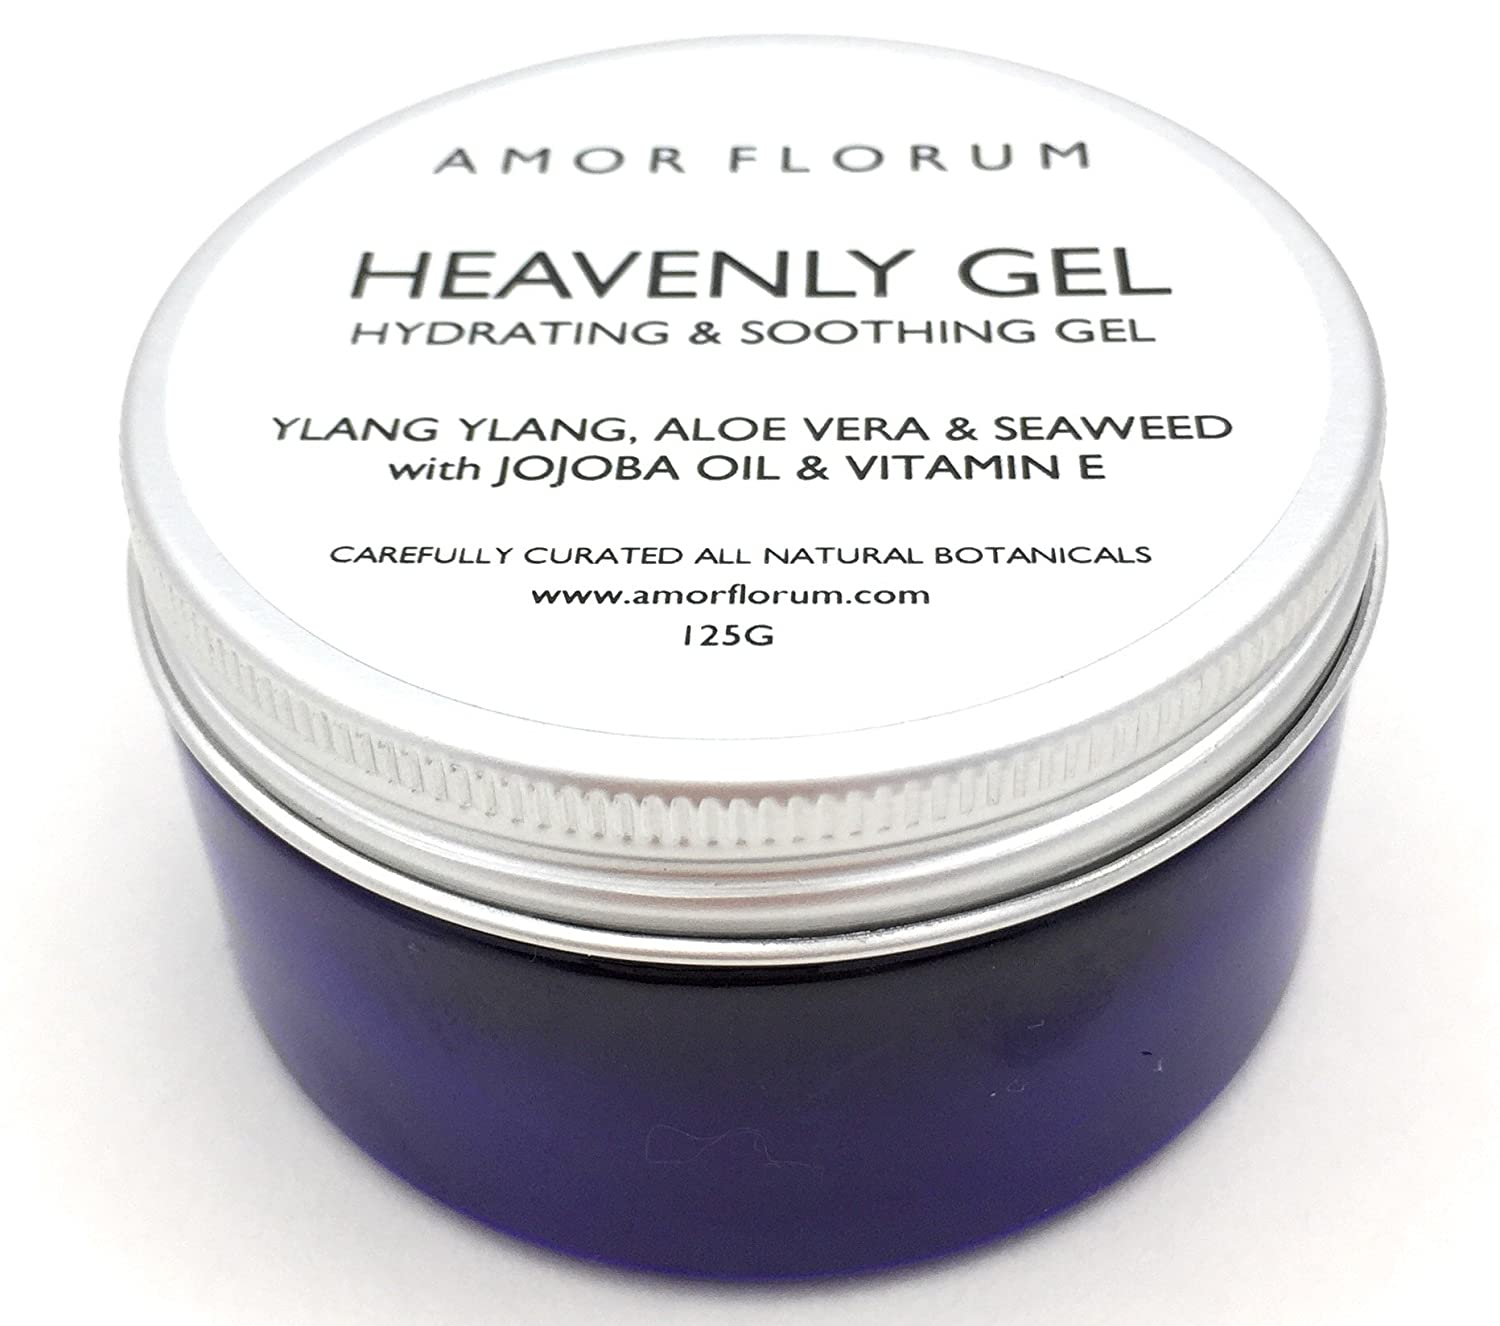 ALOE & SEAWEED - HEAVENLY GEL with YLANG YLANG - 100ml - by AMOR FLORUM - All natural hydrating and soothing gel with powerful botanical extracts and oils that will leave your skin soft and moisturised. With Aloe Vera, Witch Hazel, Jojoba Oil and Toco